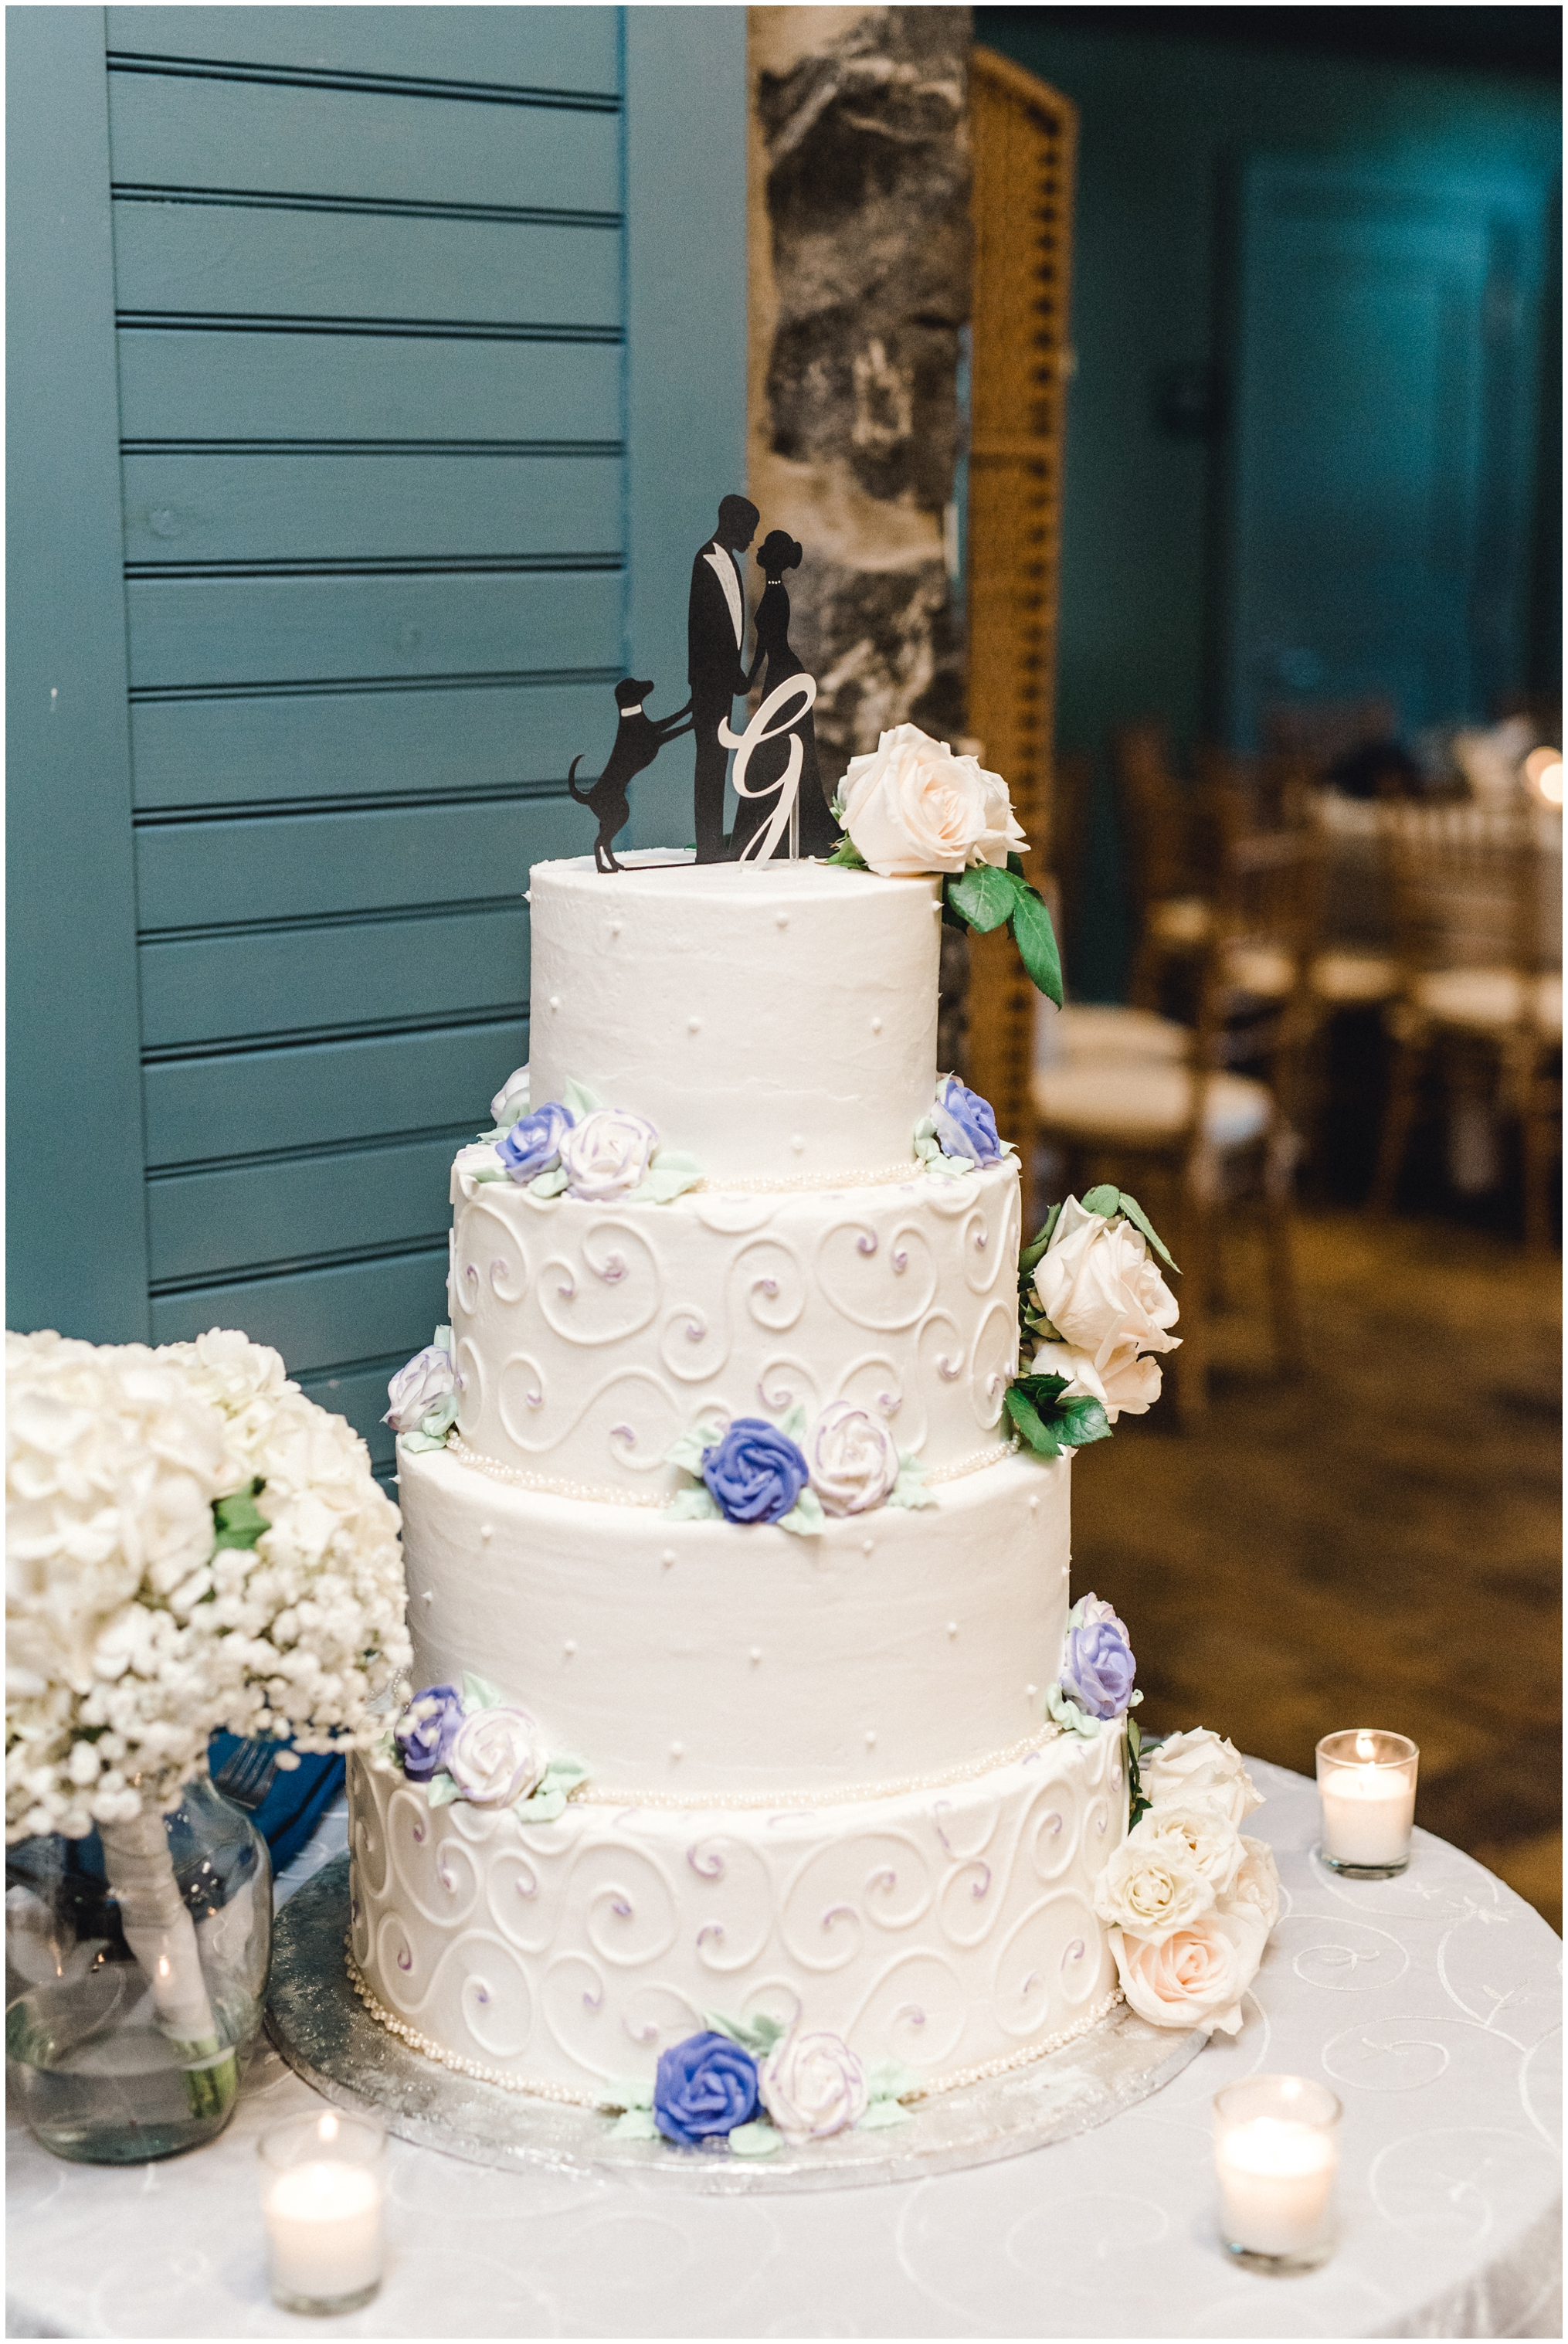 Krista Brackin Photography | April Wedding at The Carriage House at Rockwood Park_0100.jpg